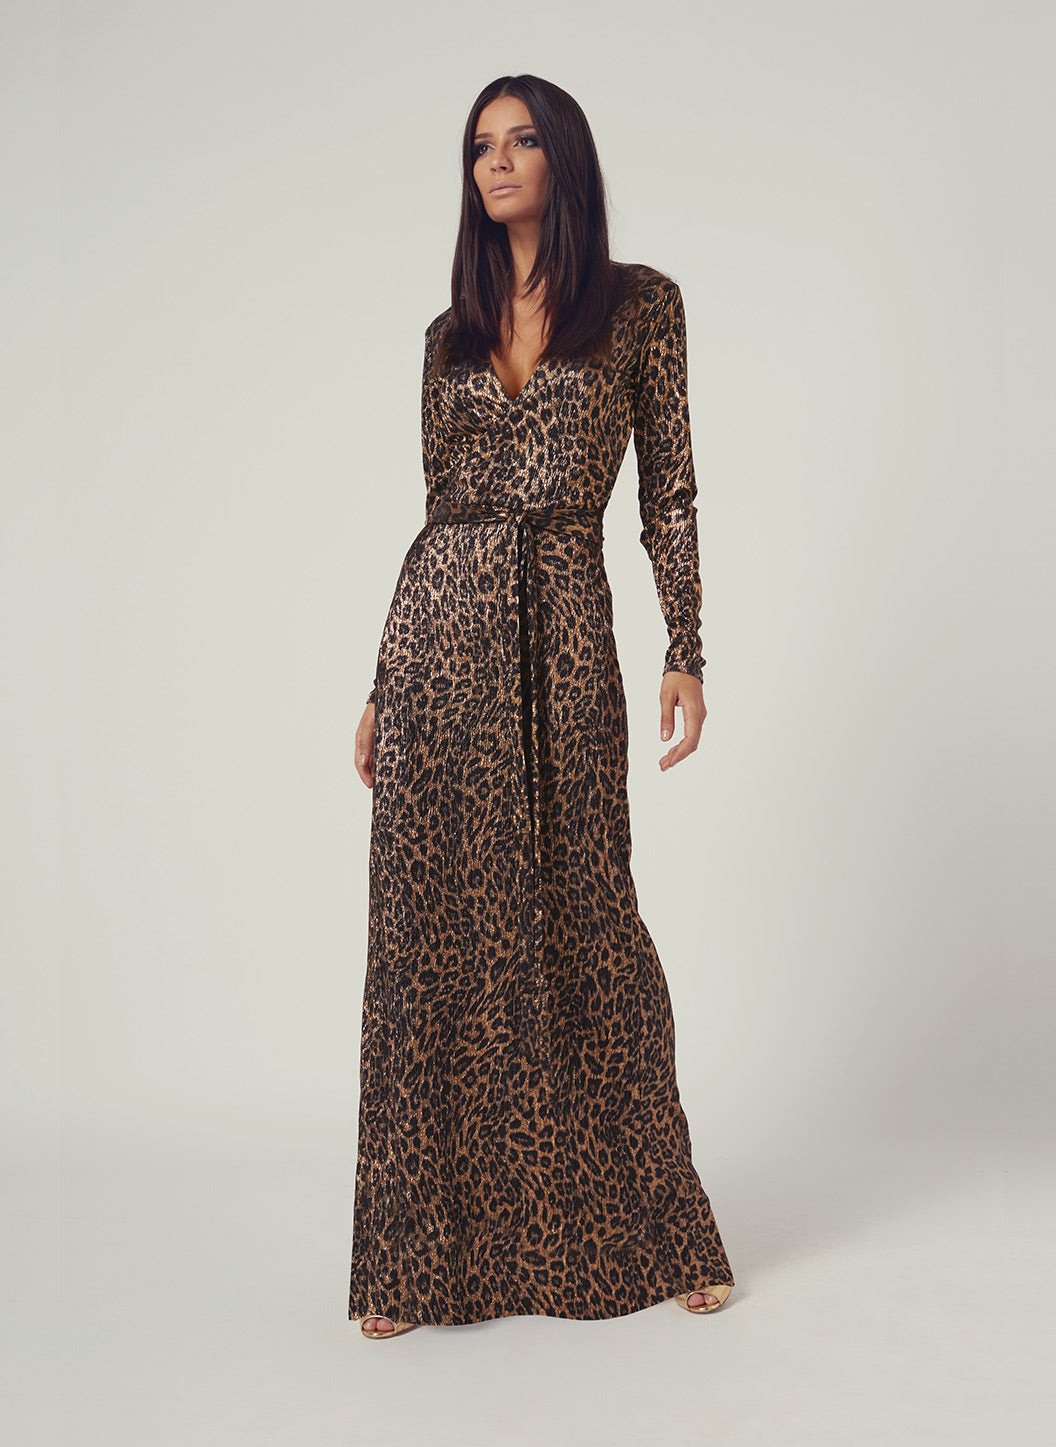 Look 3 Wrap Maxi Dress Leopard